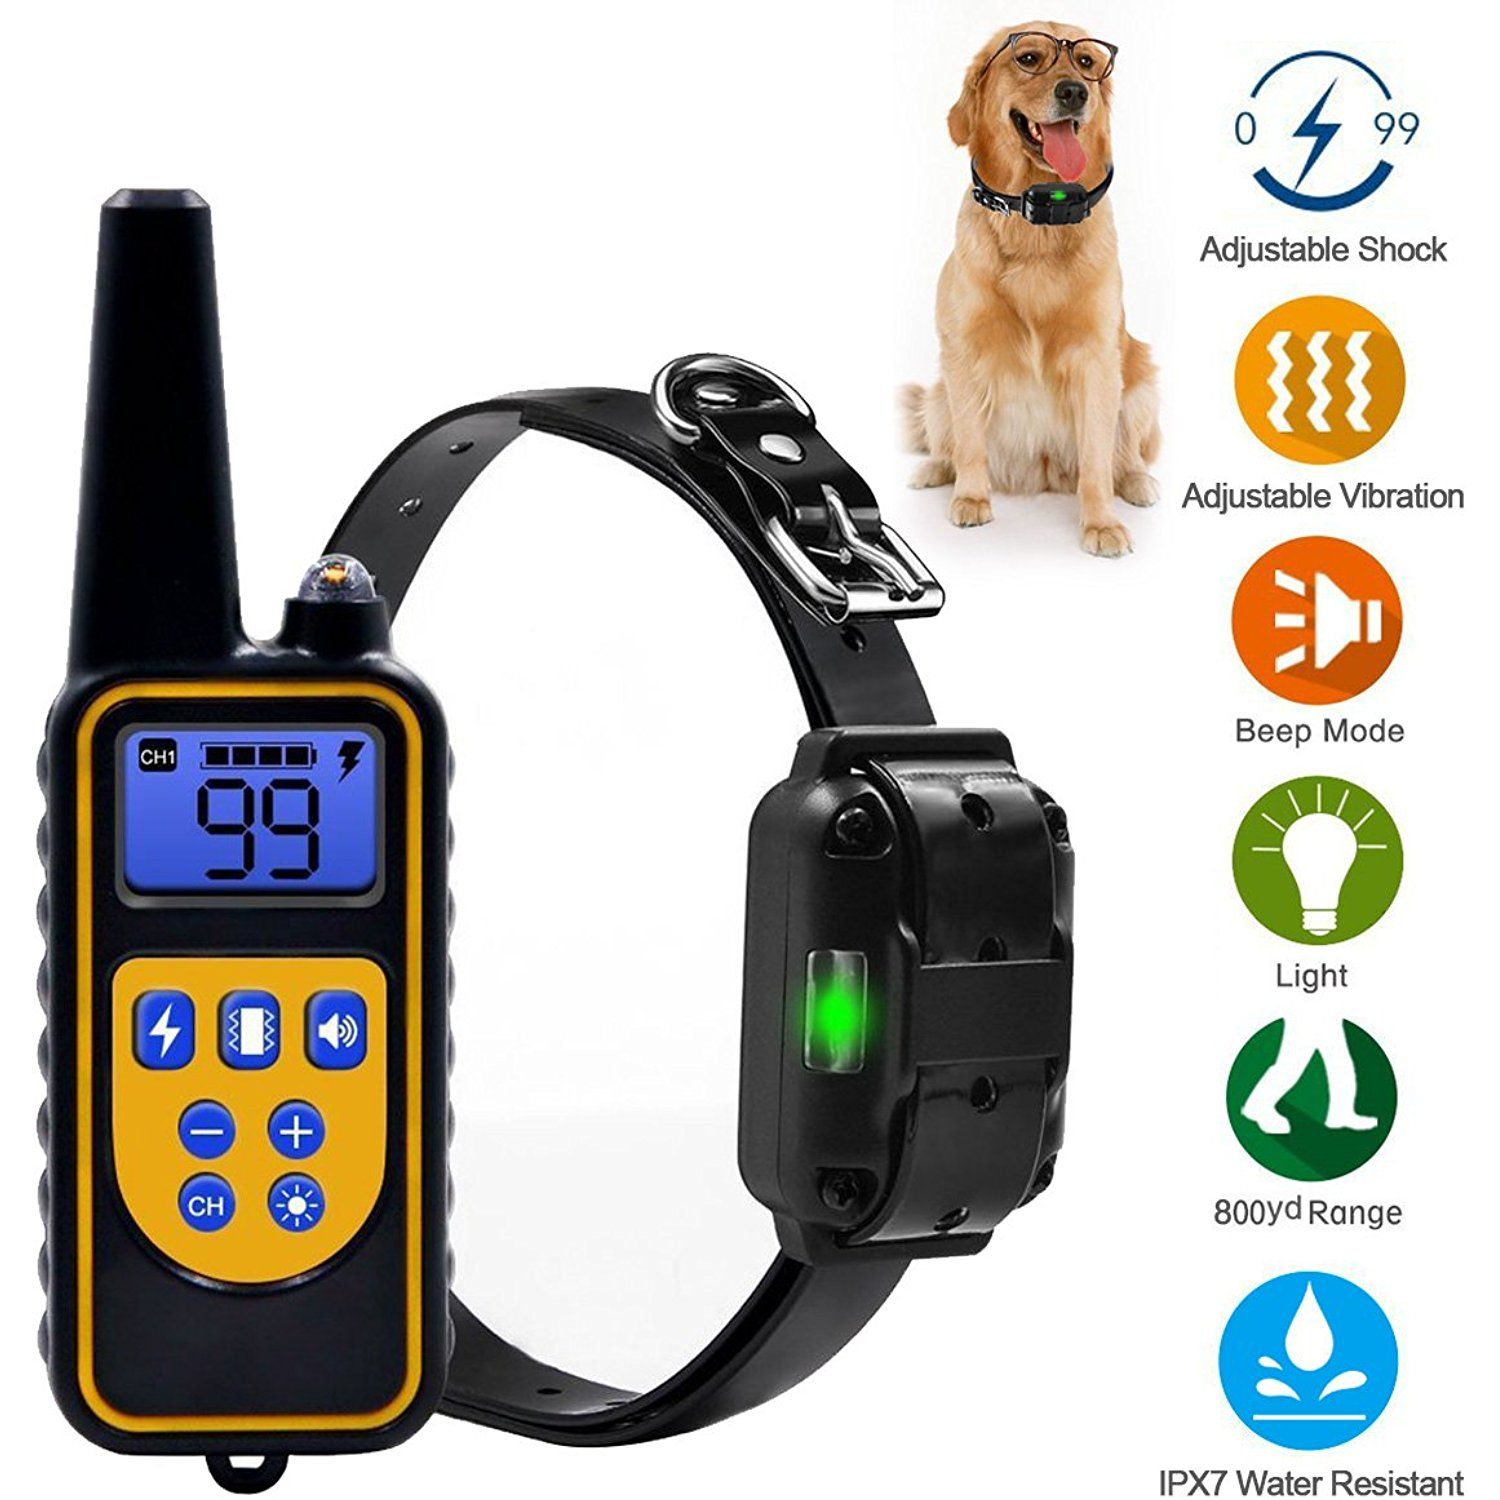 Yipet 800 Yards Range Remote Dog Training Collar Rechargeable And